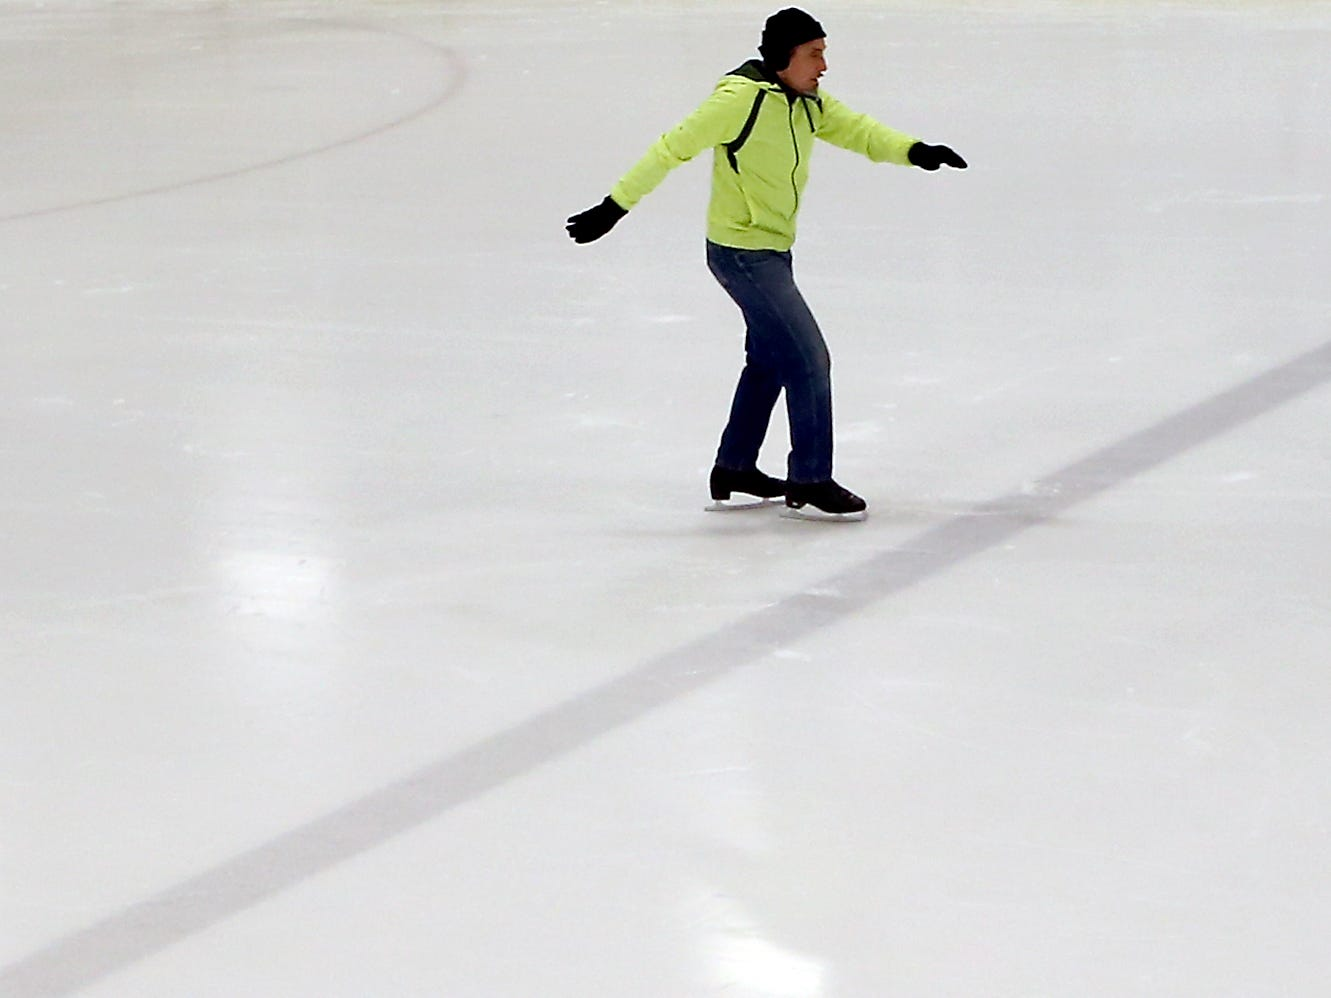 Glenn Stieber, 76, of Bremerton glides across the ice during Senior Skate at the Bremerton Ice Center on Thursday, January 3, 2019. Stieber used to compete as a roller figure skater and visits the rink every week for the Senior Skate event.